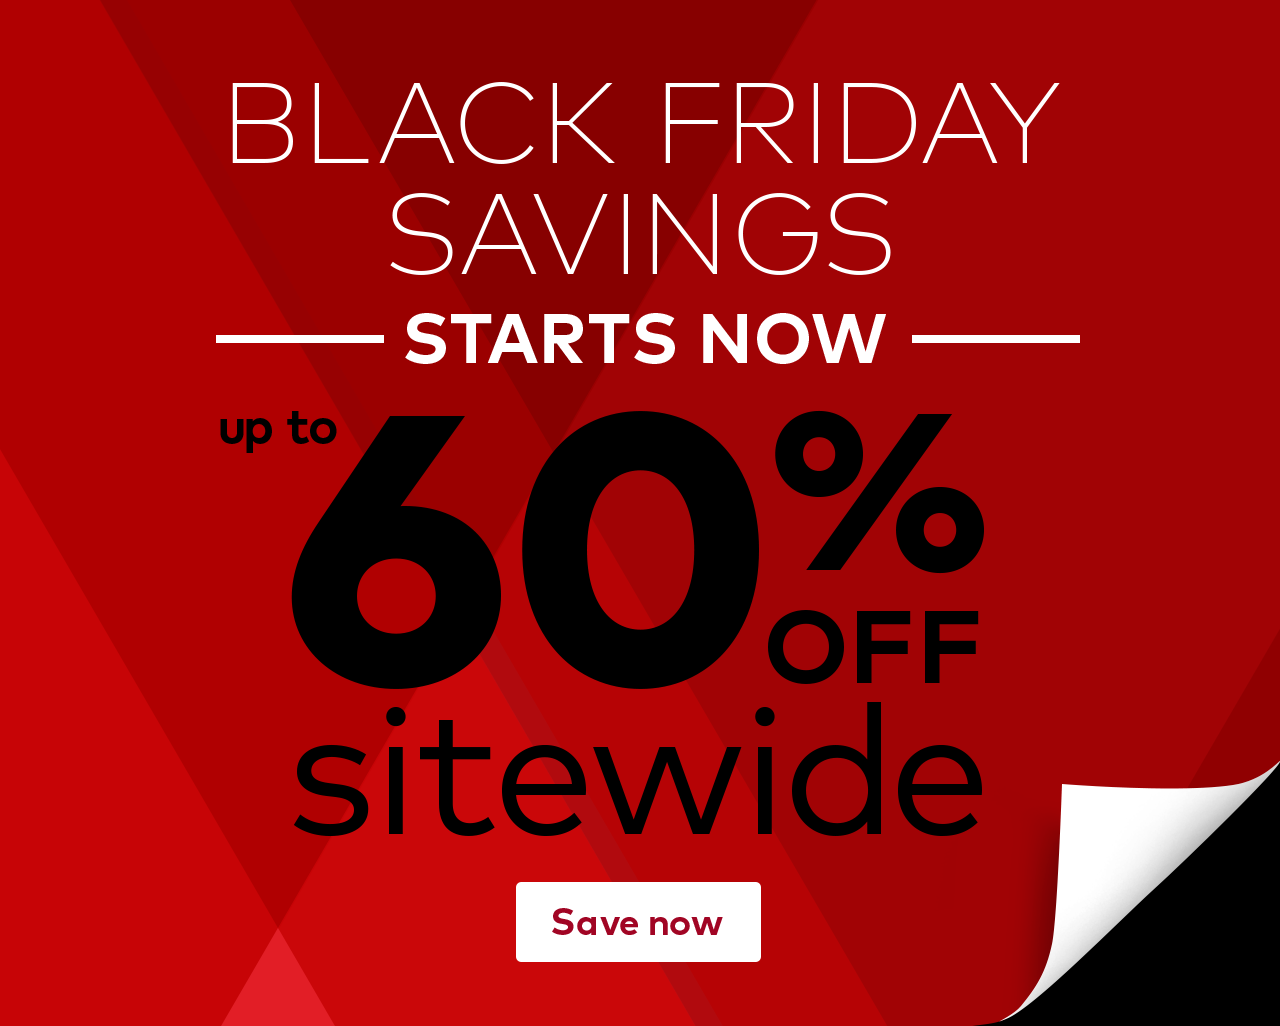 Black Friday up to 60% off sitewide at Vistaprint.